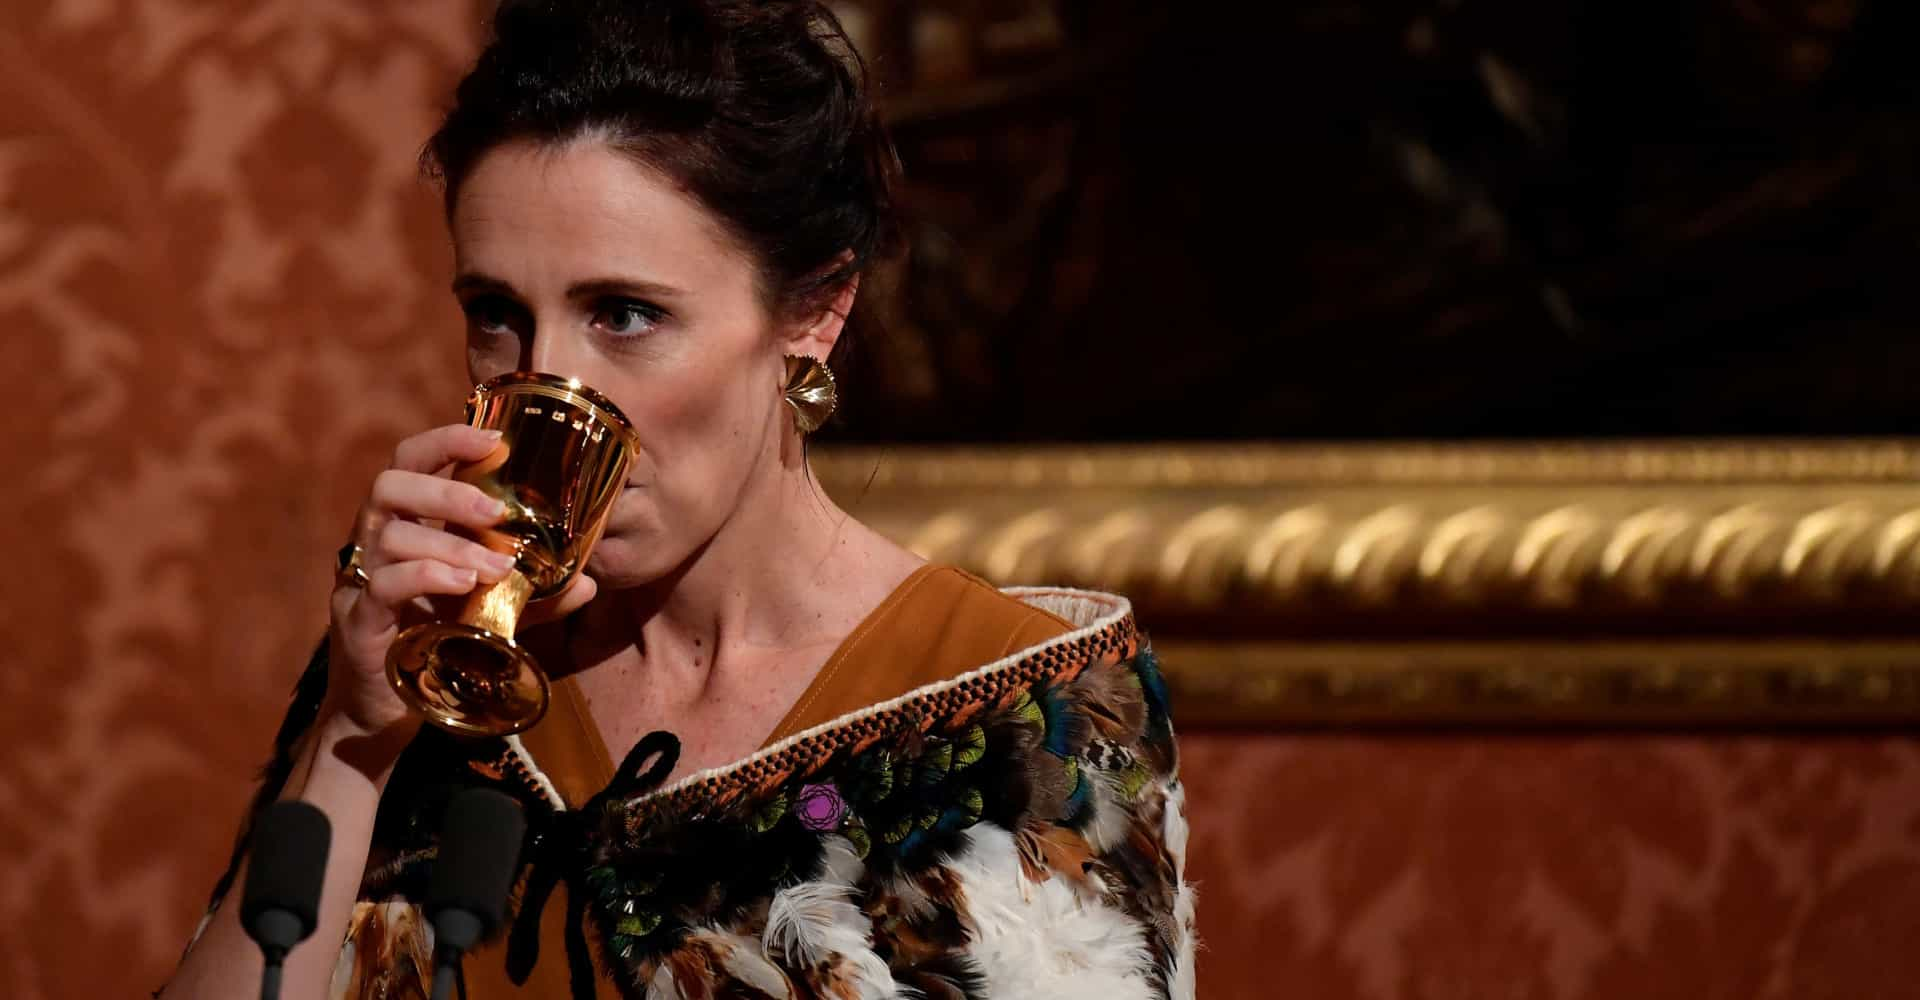 New Zealand Prime Minister reveals she auditioned for 'Lord of the Rings'